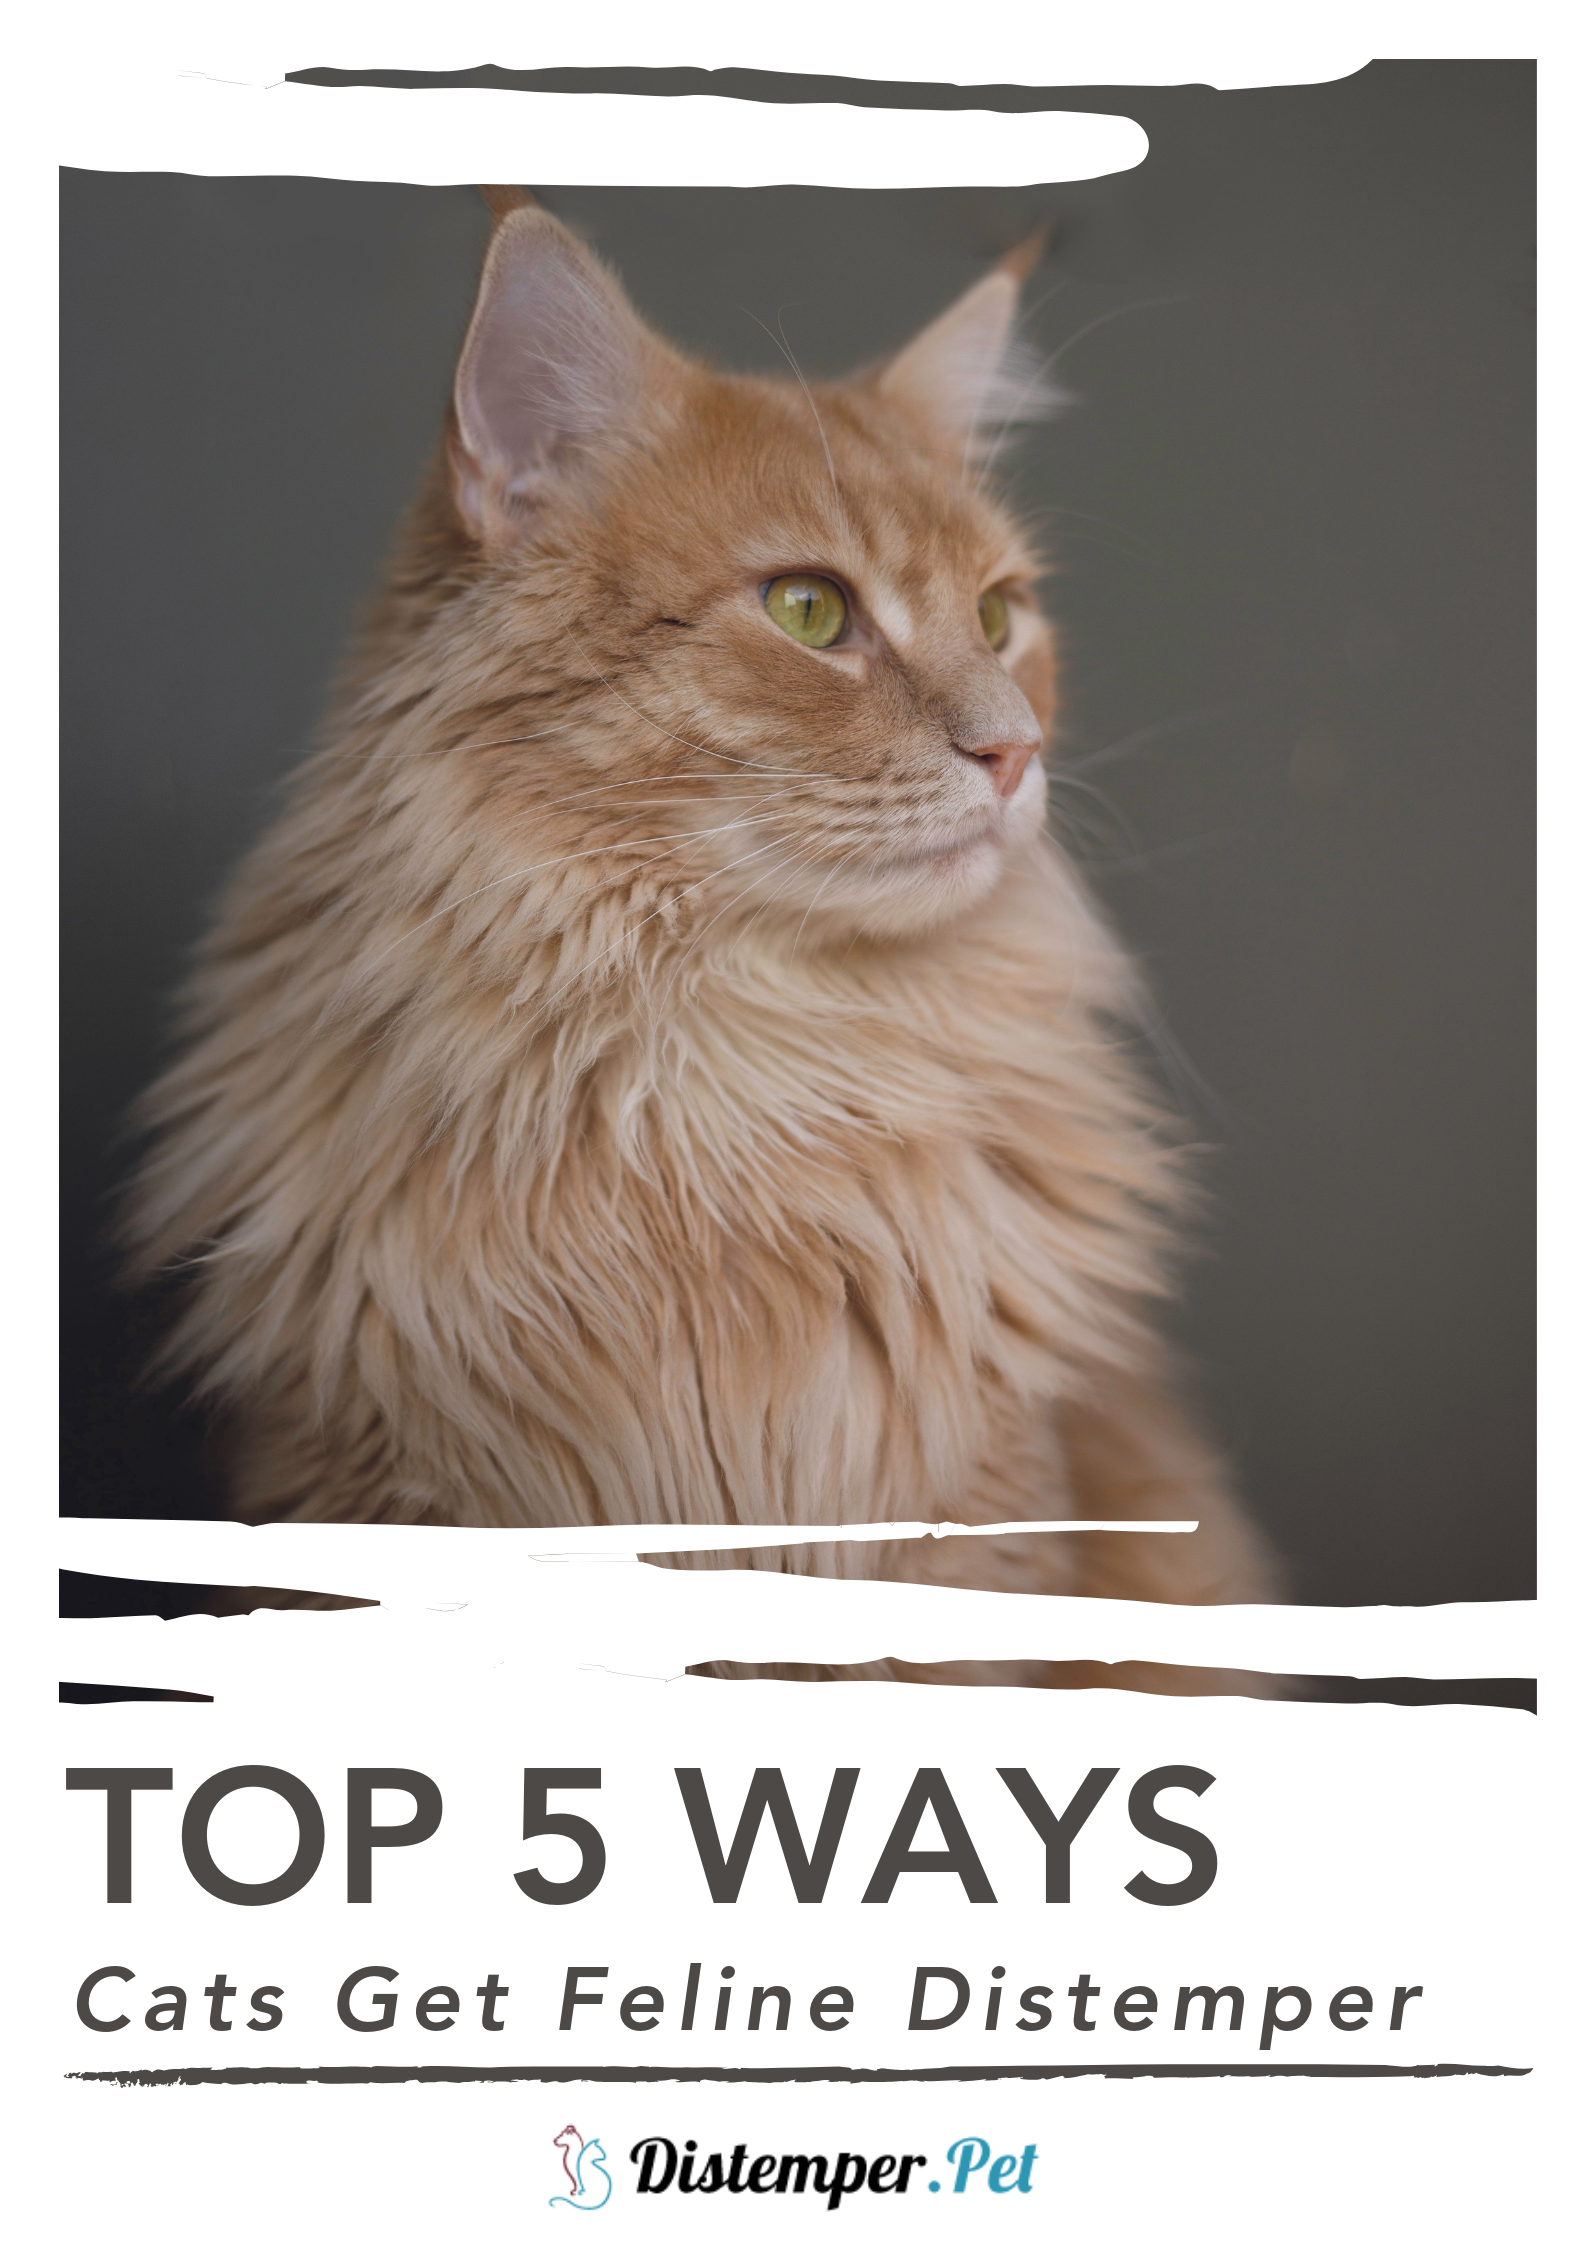 5 Ways Cats Get Feline Distemper Feline distemper, Cats